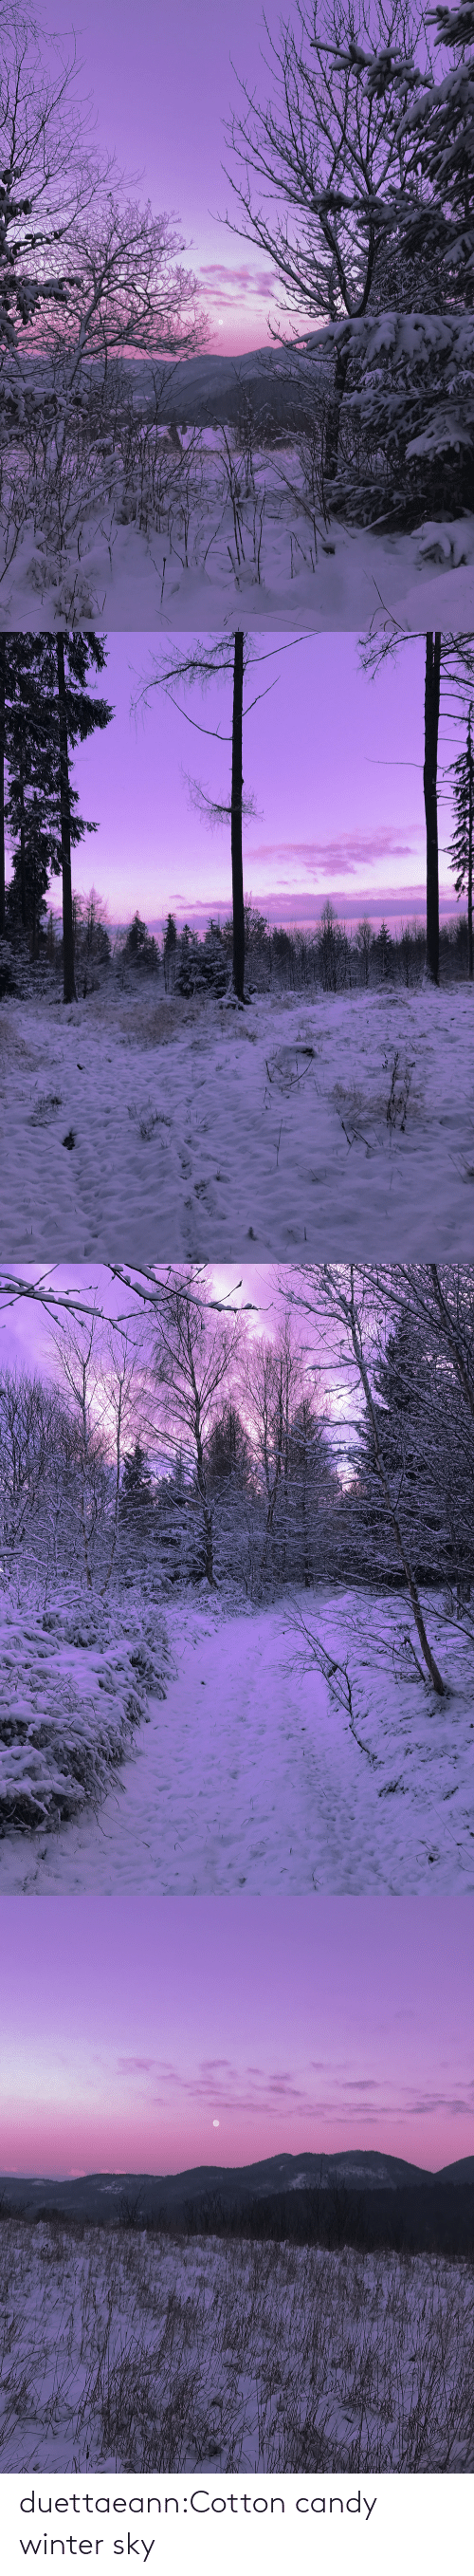 cotton: duettaeann:Cotton candy winter sky